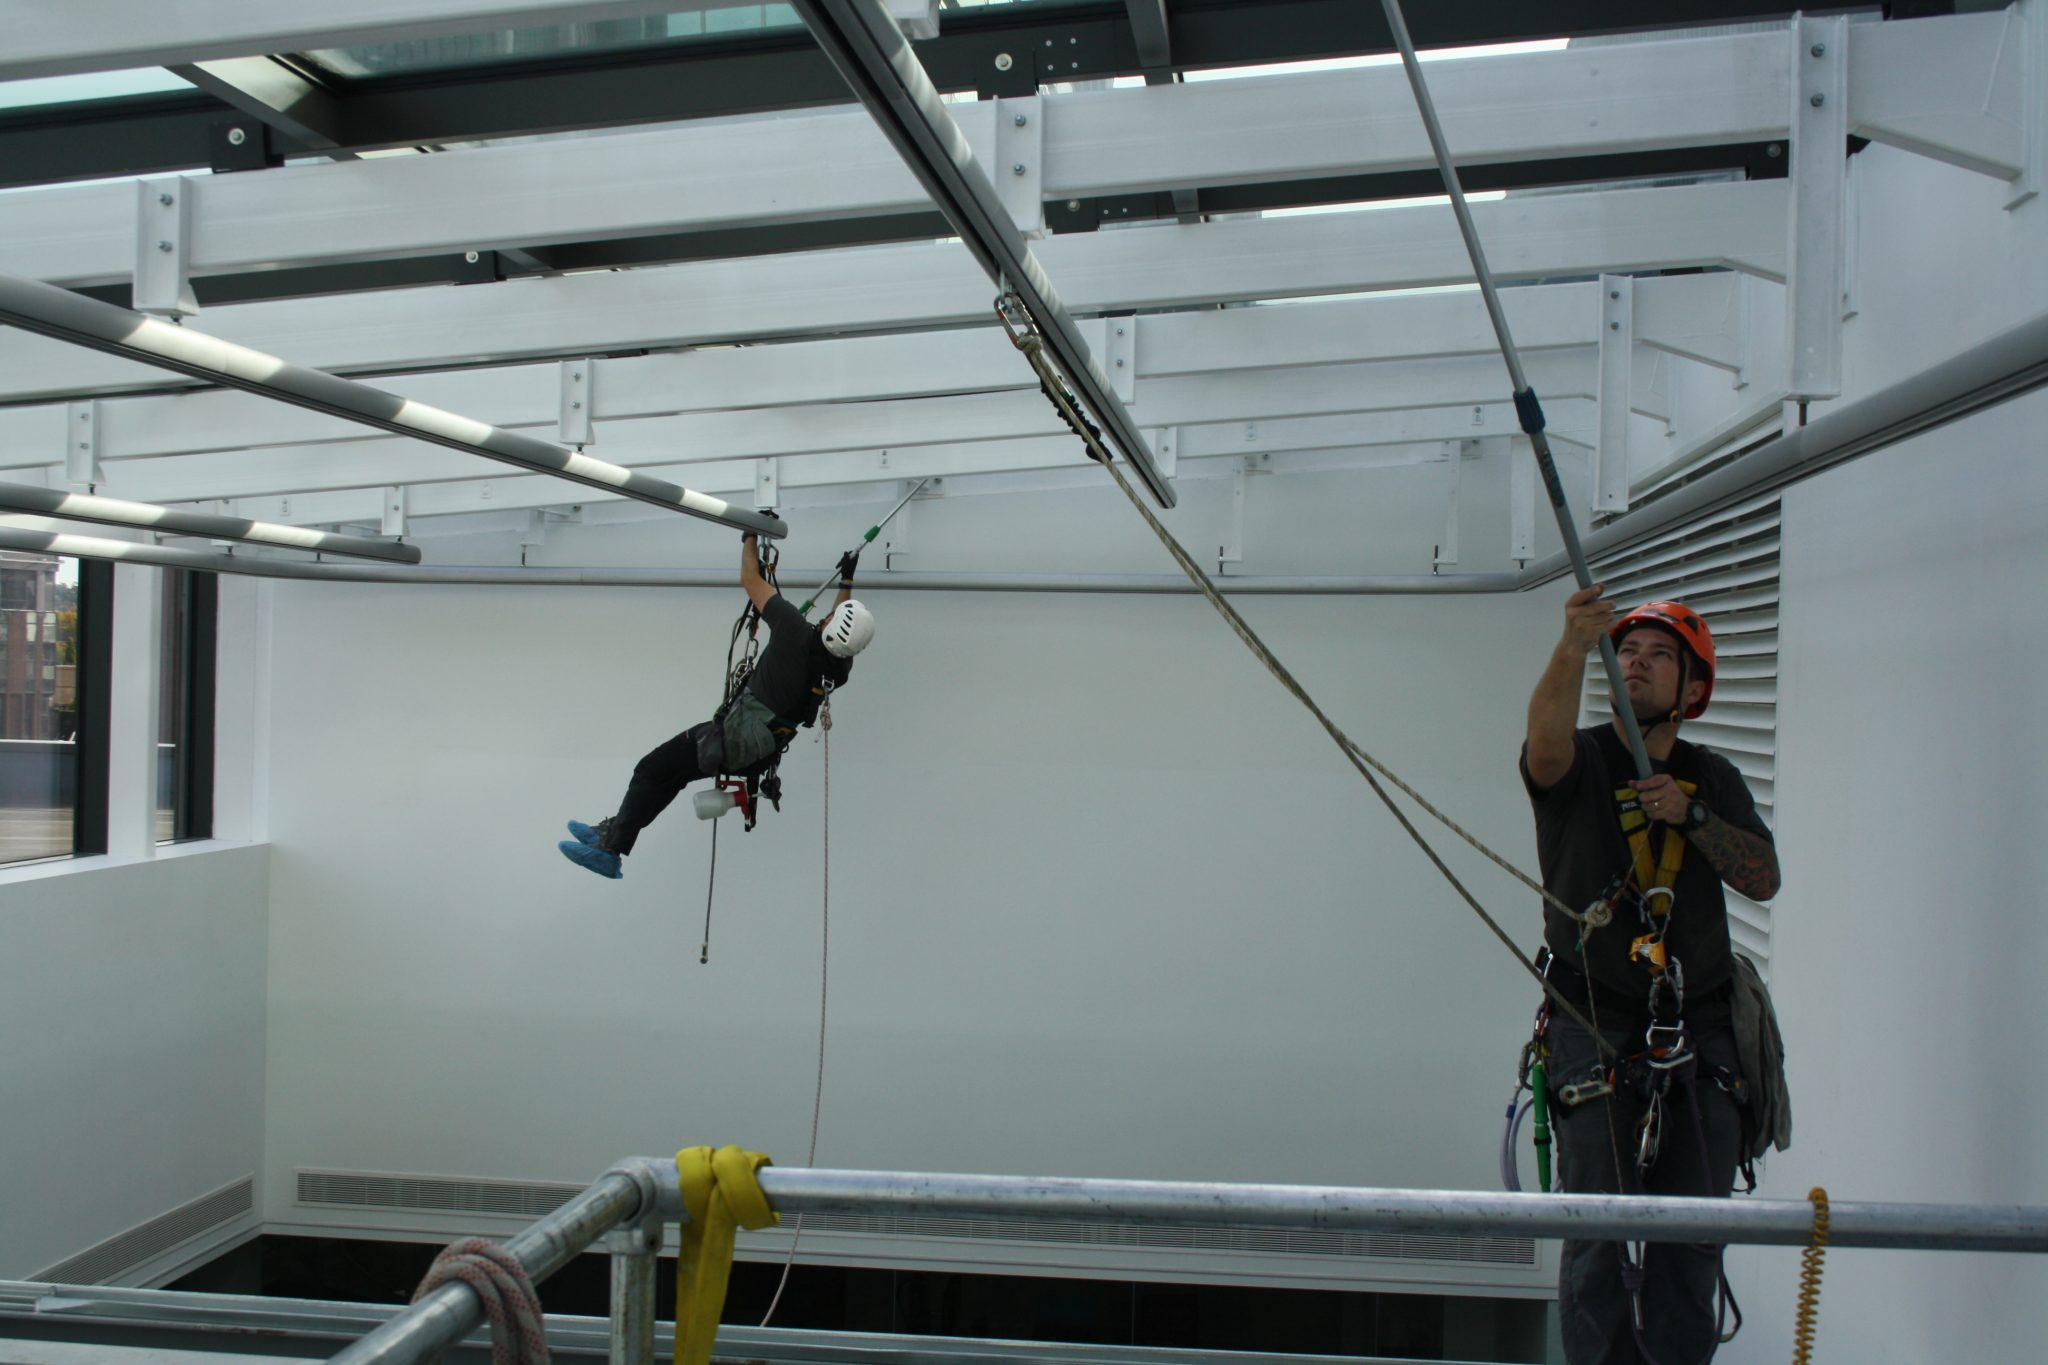 What does rope access training involve